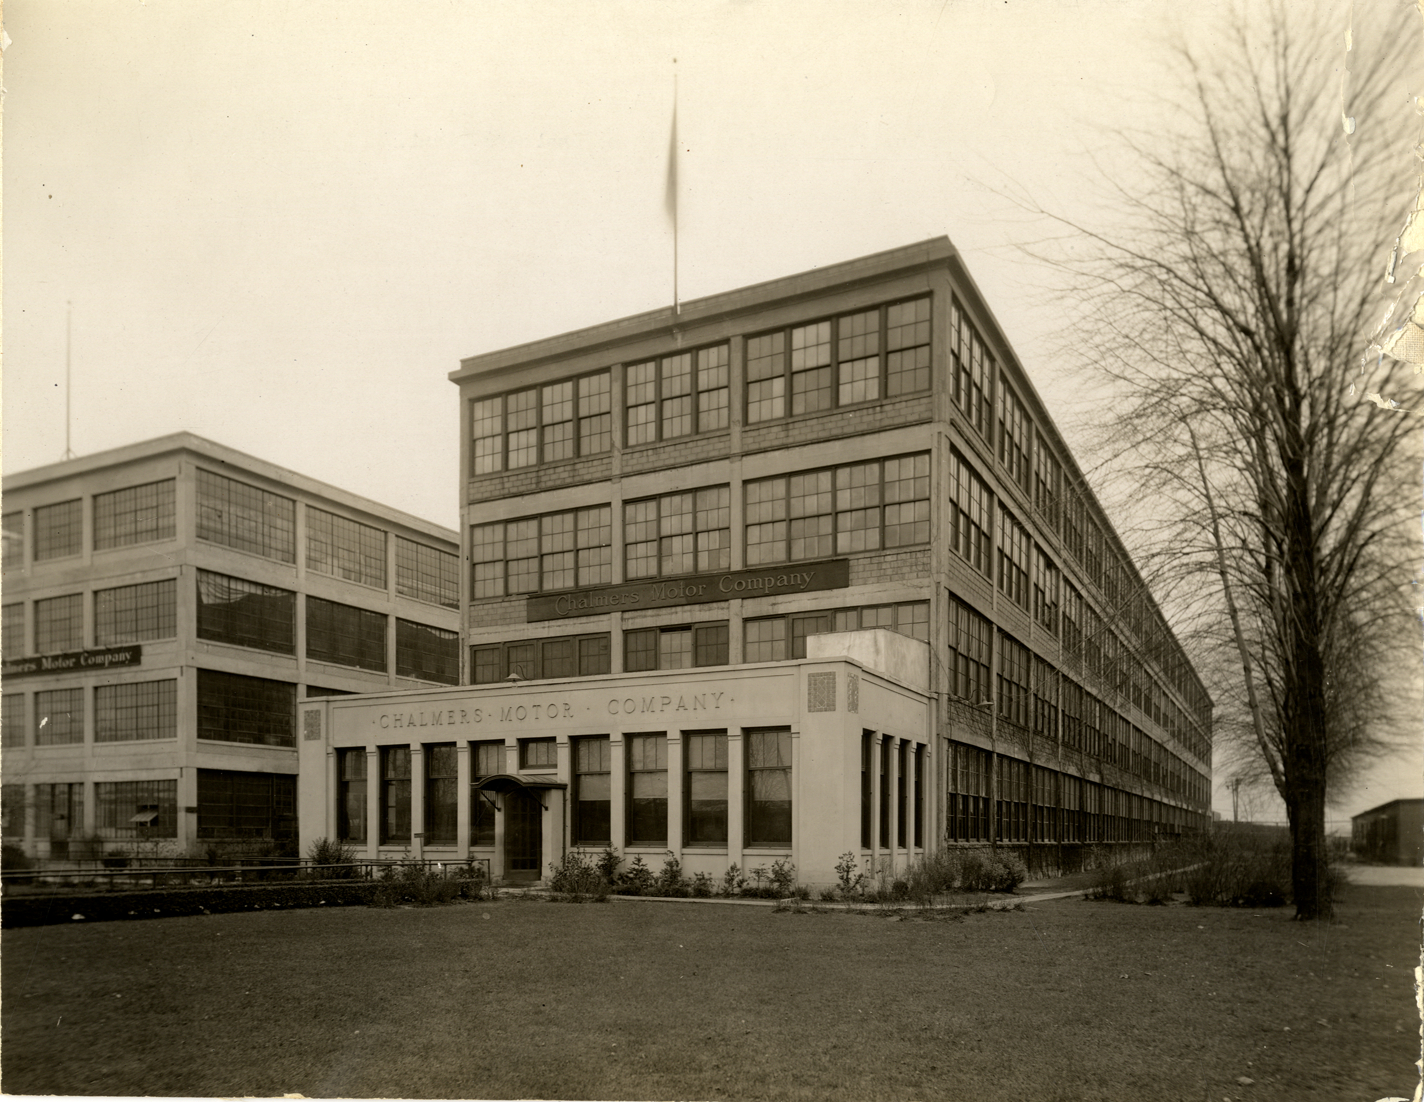 Main office building, Chalmers Motor Company factory